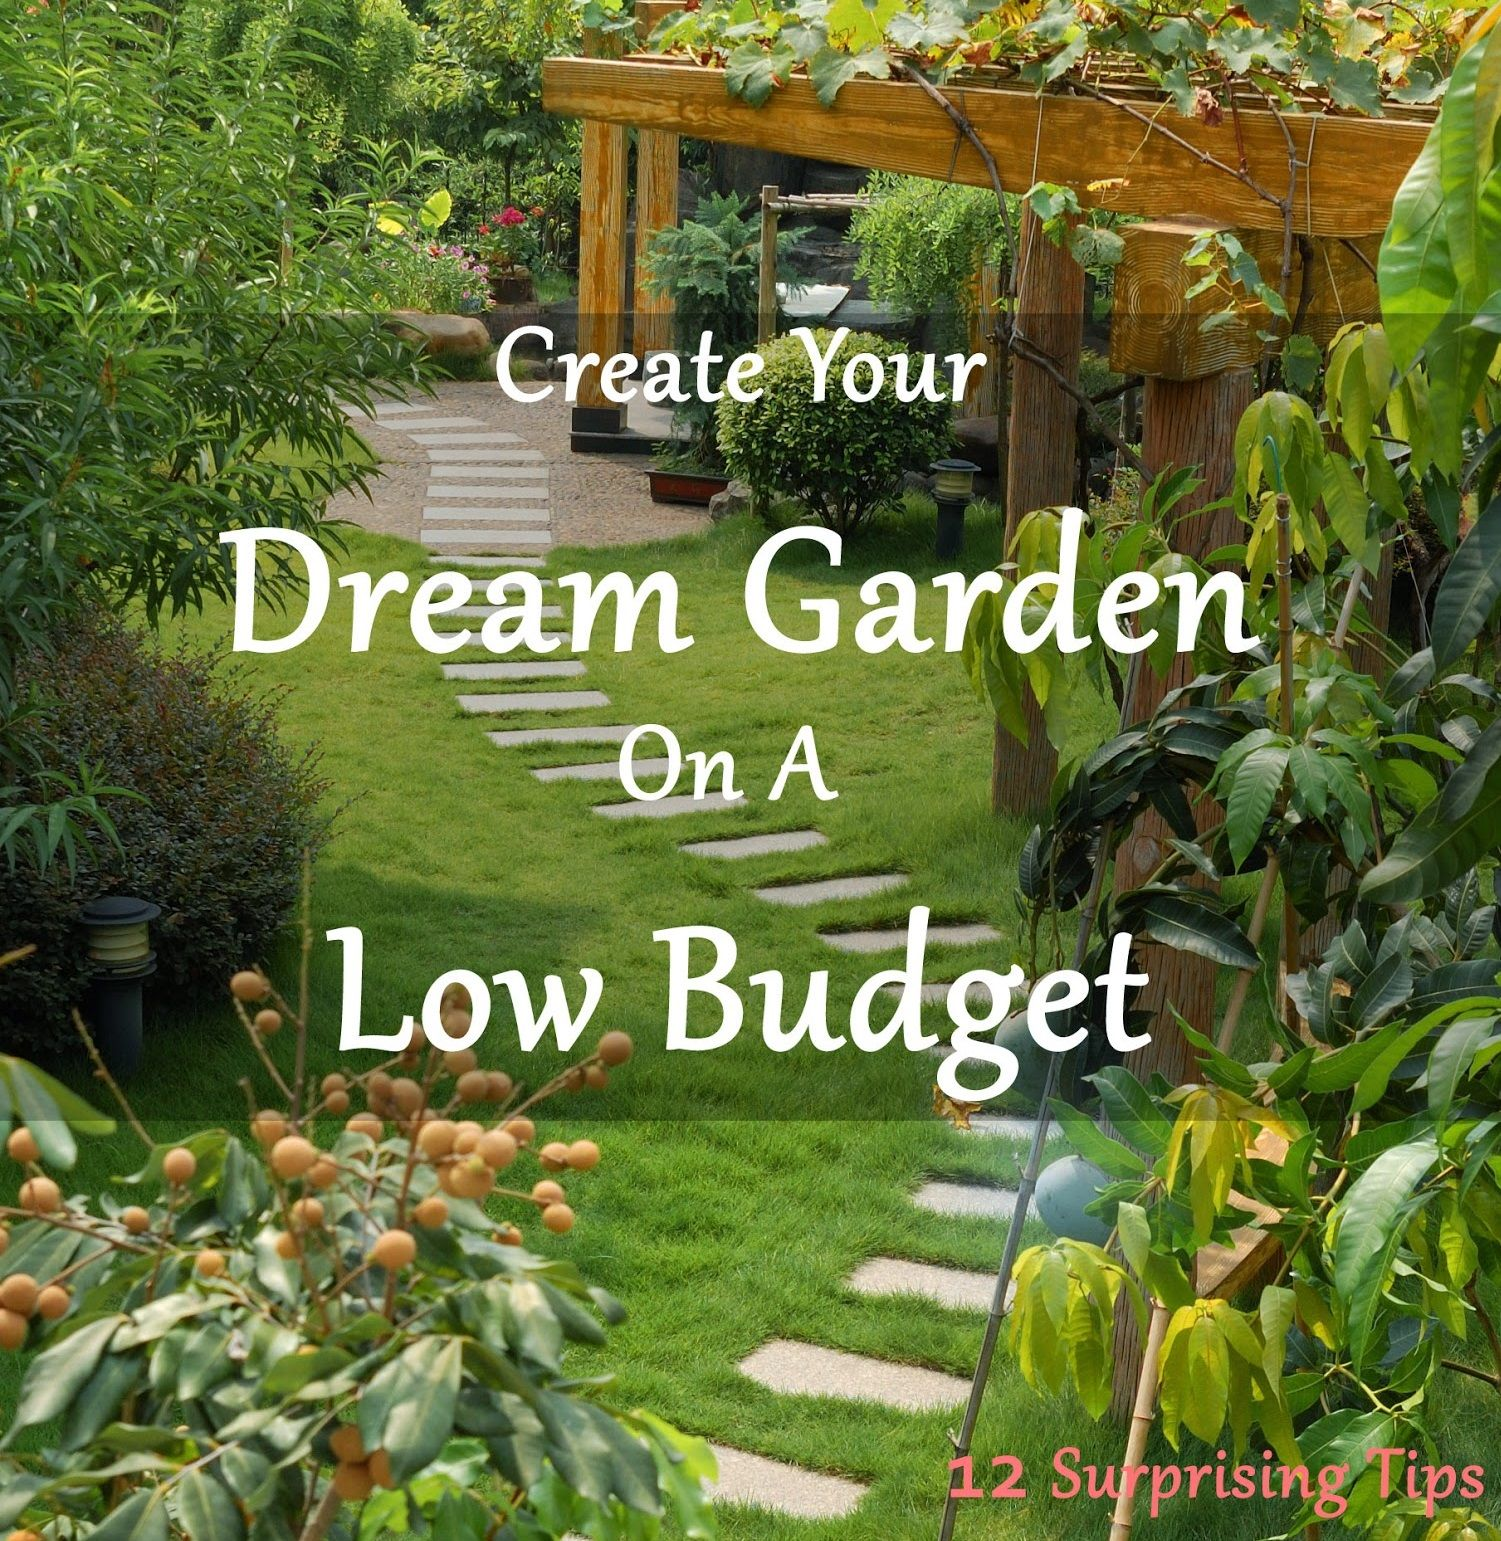 Create Your Dream Garden On A Low Budget With These 12